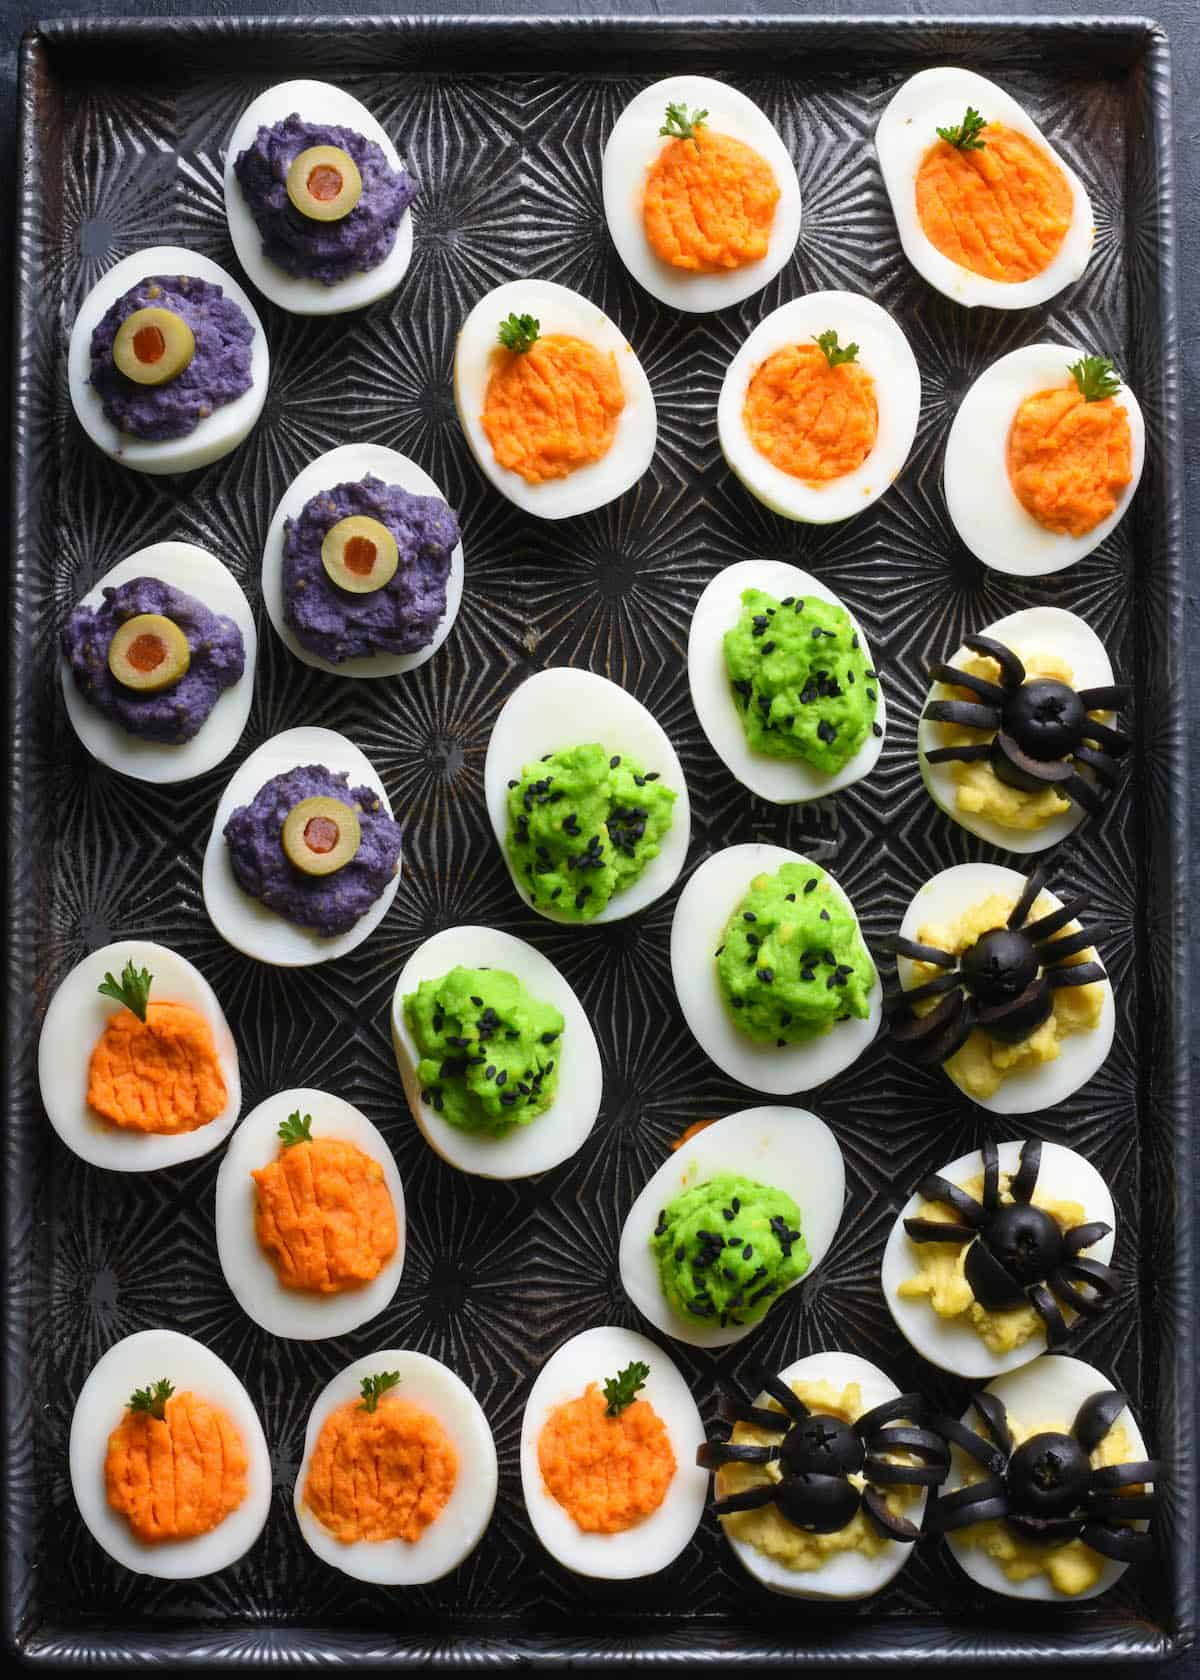 Cookie sheet with various types of Halloween decorated deviled eggs arranged on top.